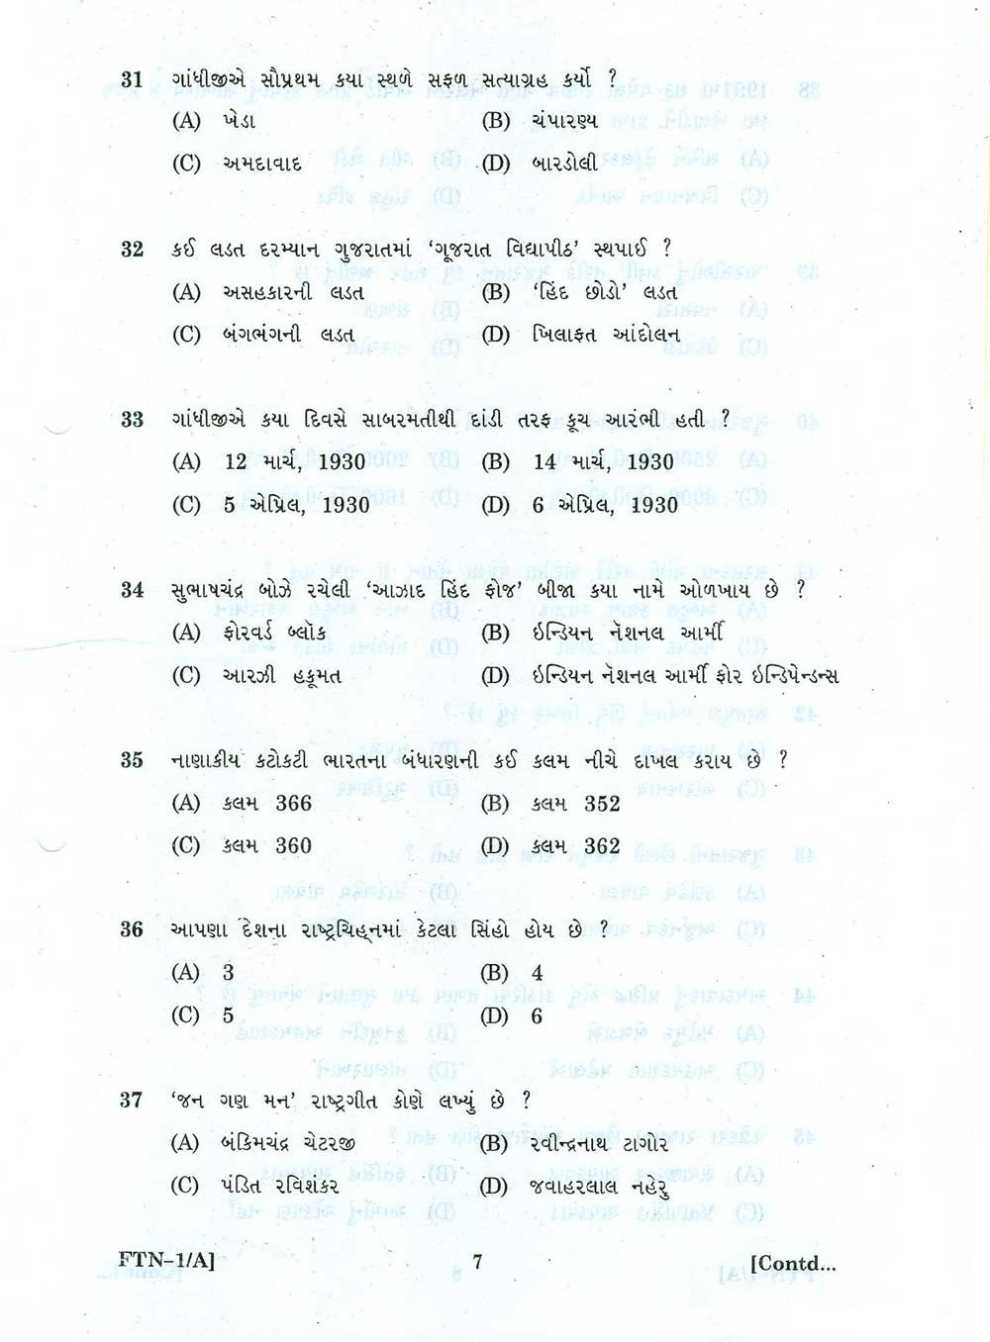 gujarati essay online Navneet gujarati nibandhmala: standard 10-11-12, parts 1-4 subodh, v a shah navneet publications, 1999 3 reviews what people are saying - write a review user.